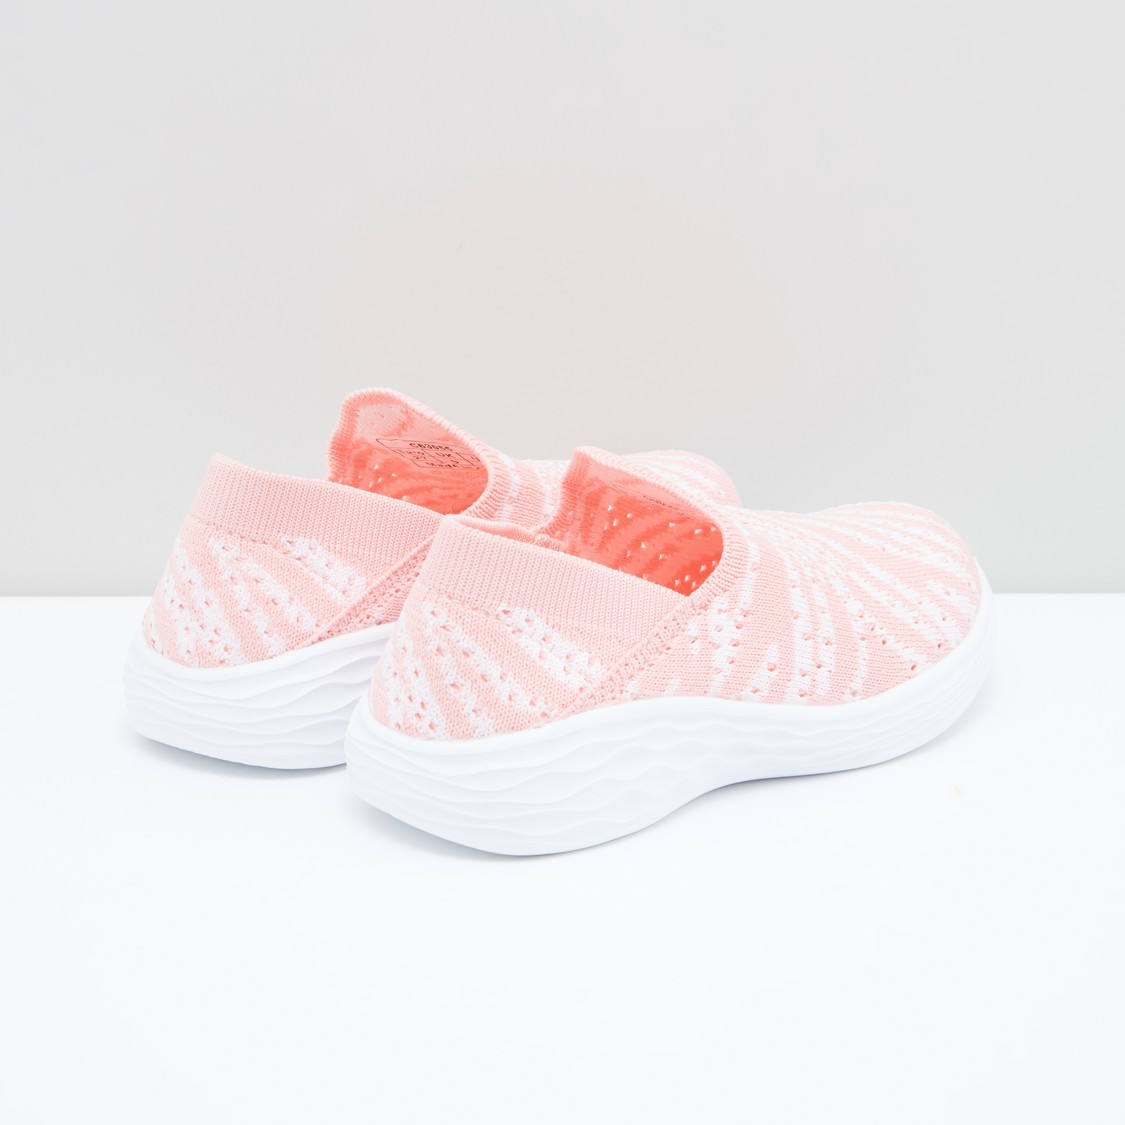 Printed Slip-On Shoes